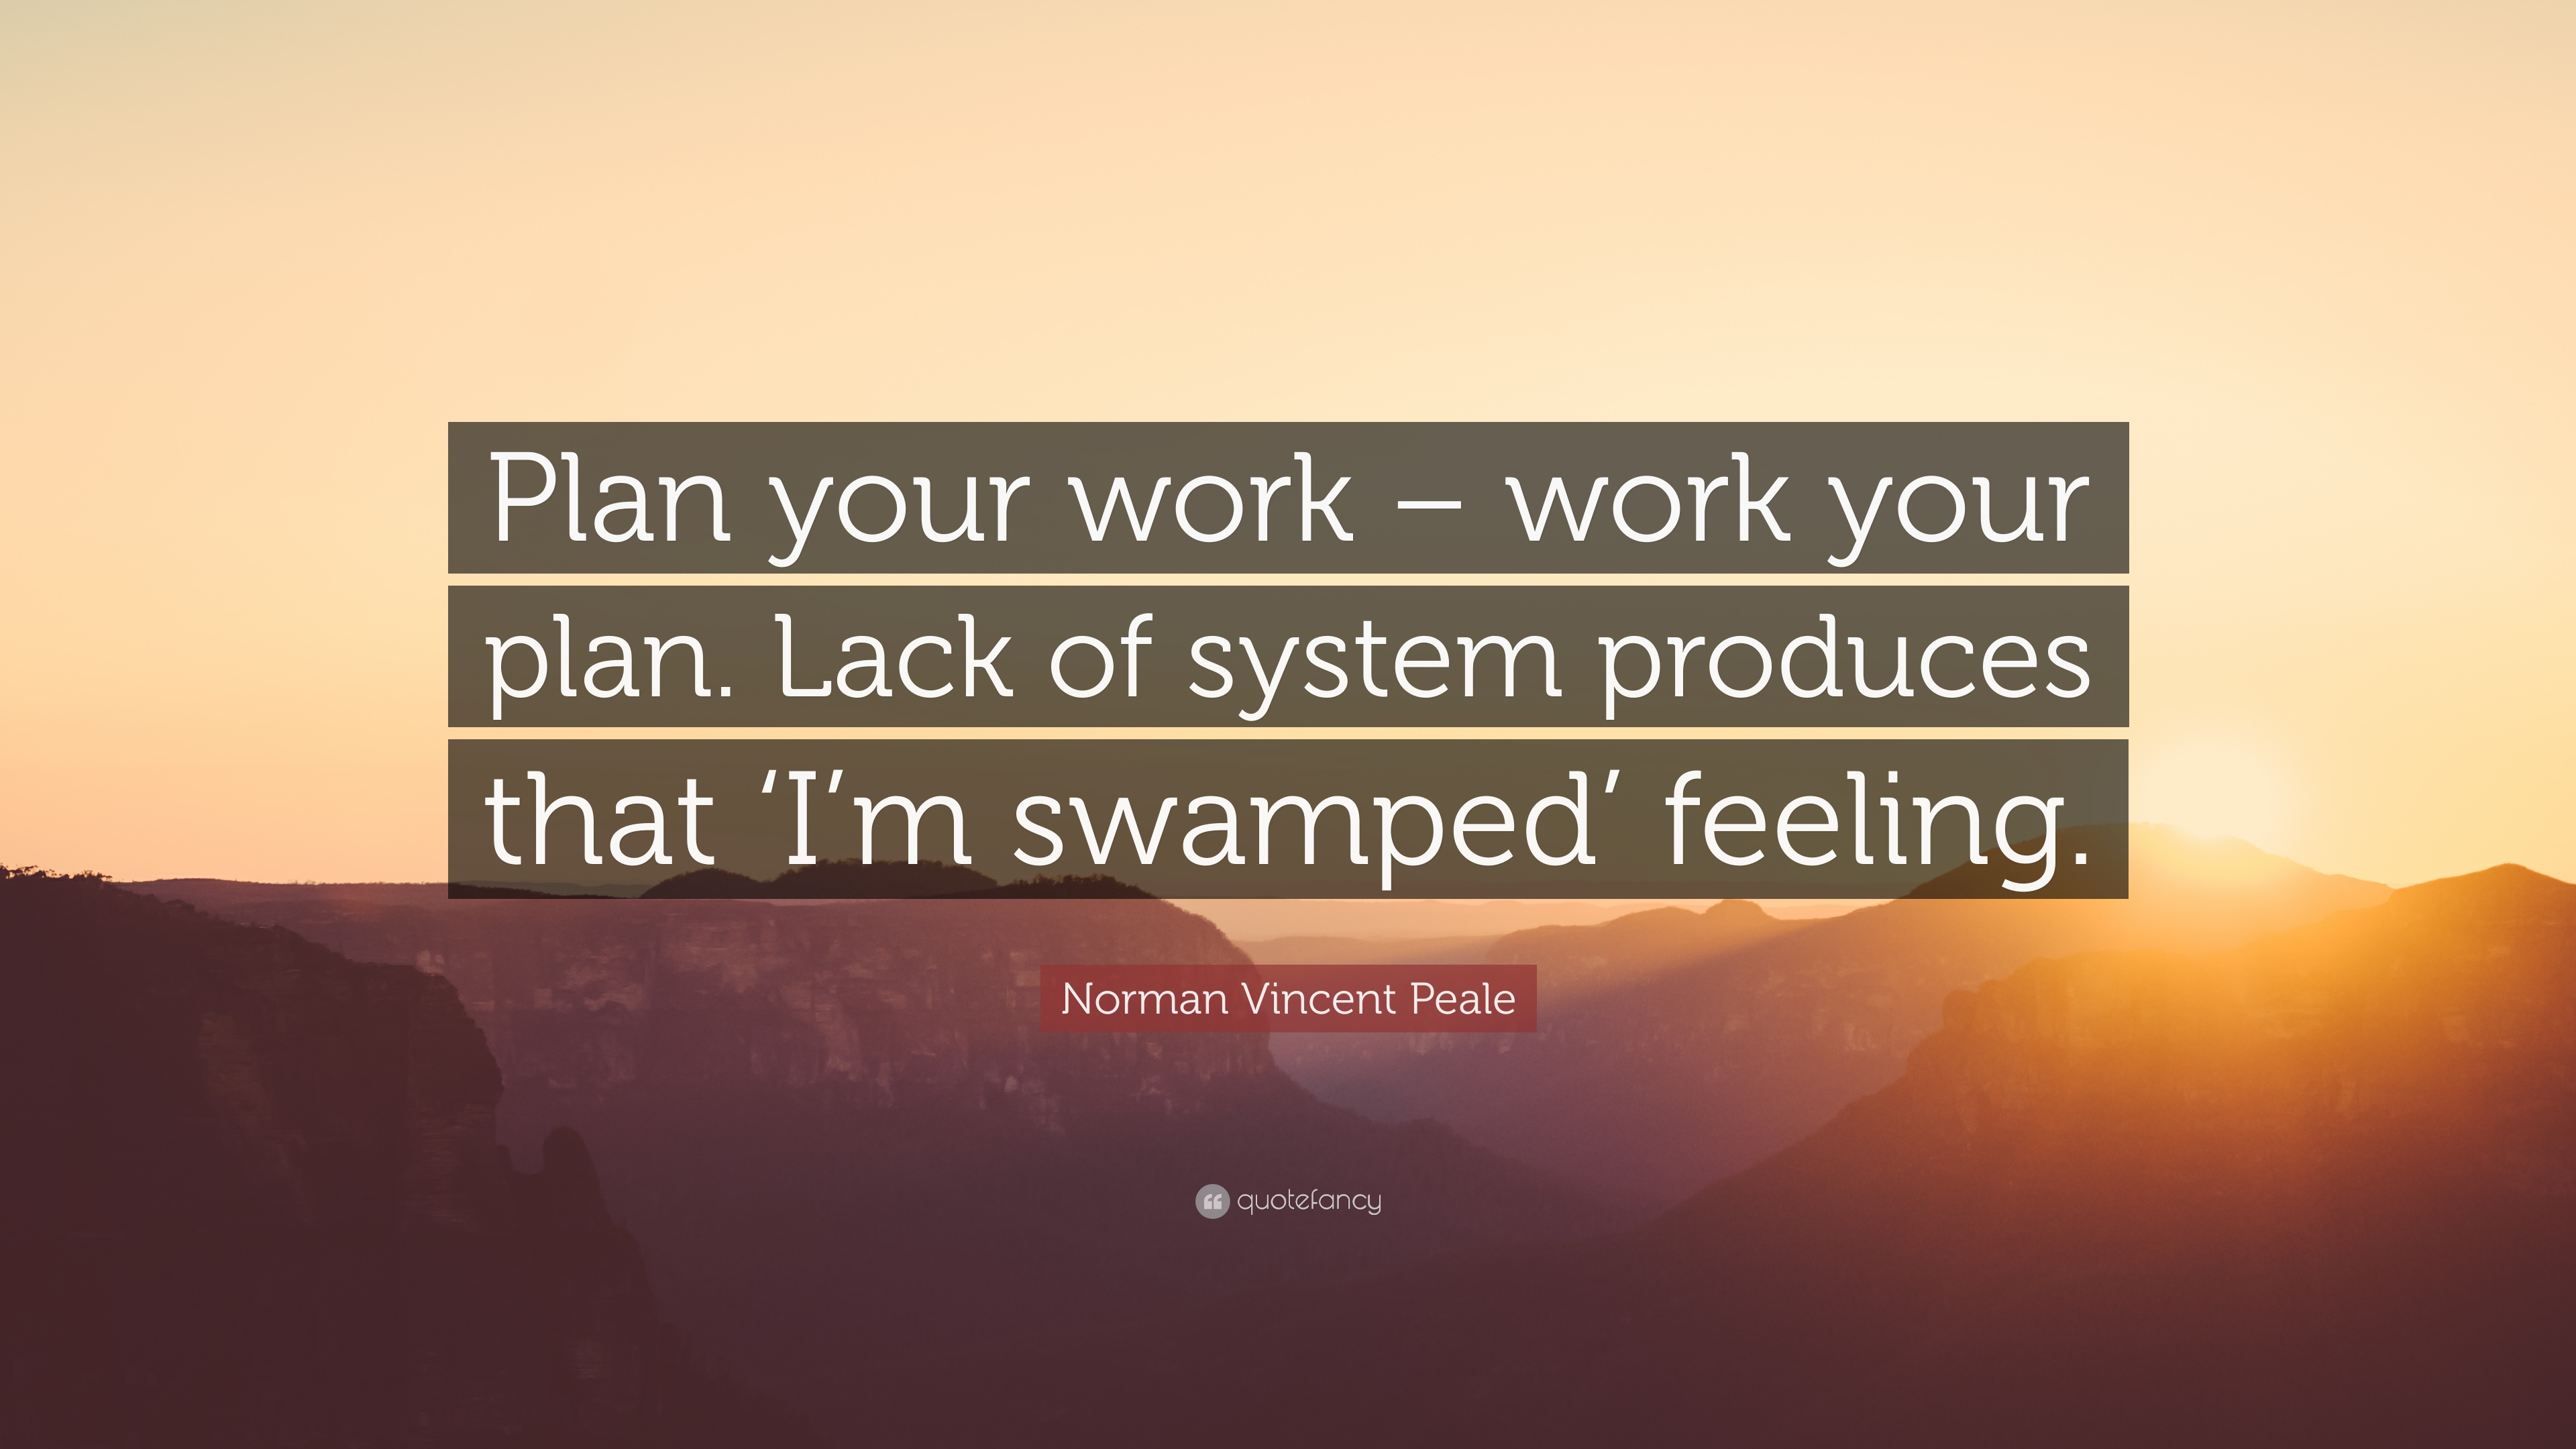 norman vincent peale quote plan your work work your plan lack norman vincent peale quote plan your work work your plan lack of